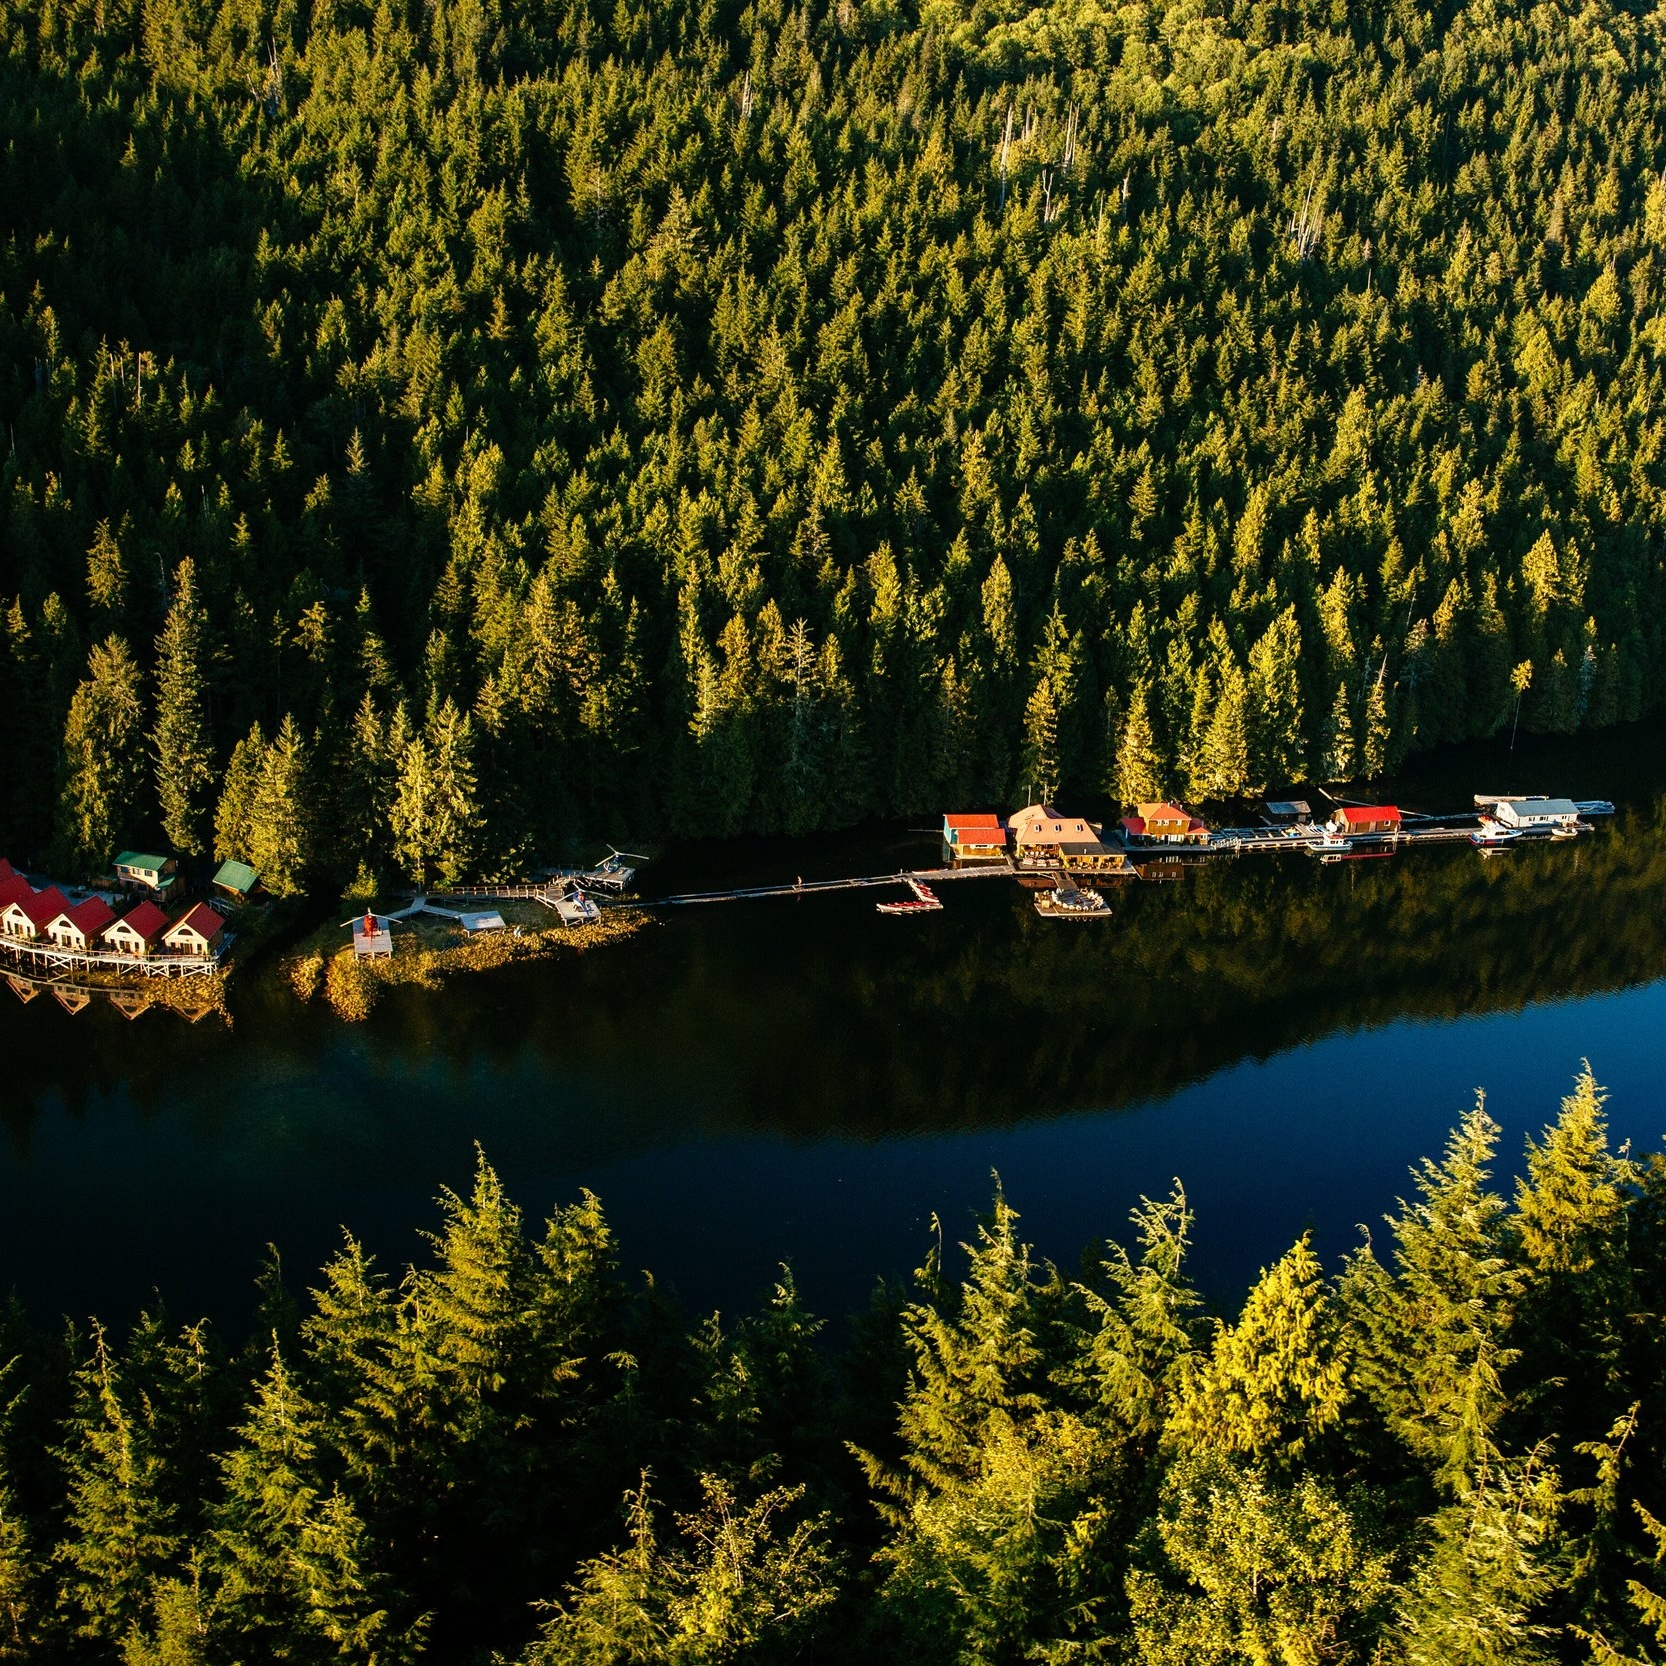 Nimmo Bay Wilderness Resort - Nimmo Bay is an intimate, family-owned and operated resort located in the Great Bear Rainforest of British Columbia, Canada that supports and encourages guests as they create their own wild and inspiring stories.